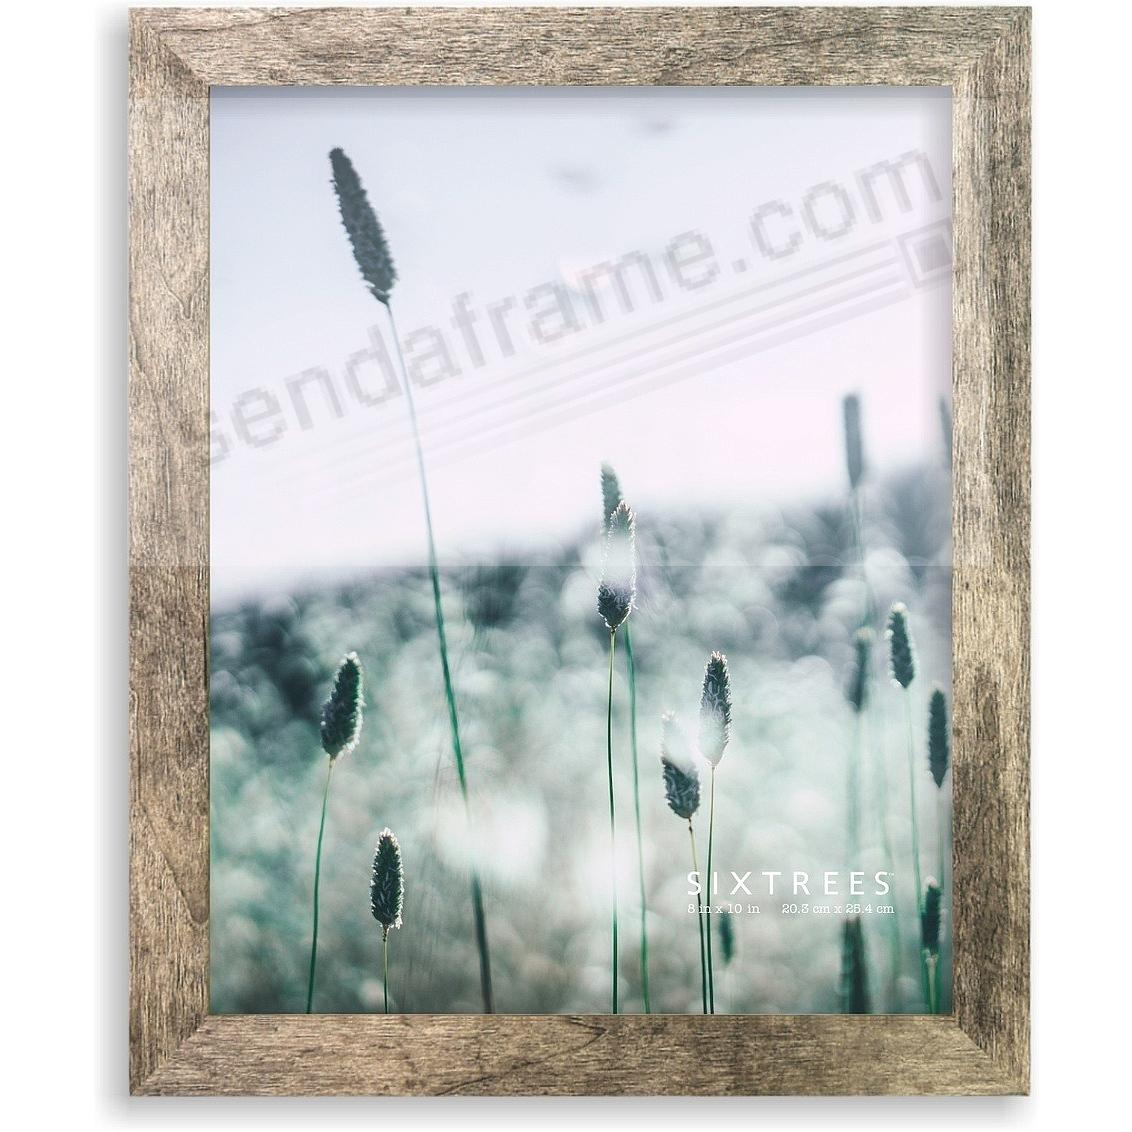 LAWRENCE Grey/White 8x10 Frame by Sixtrees®